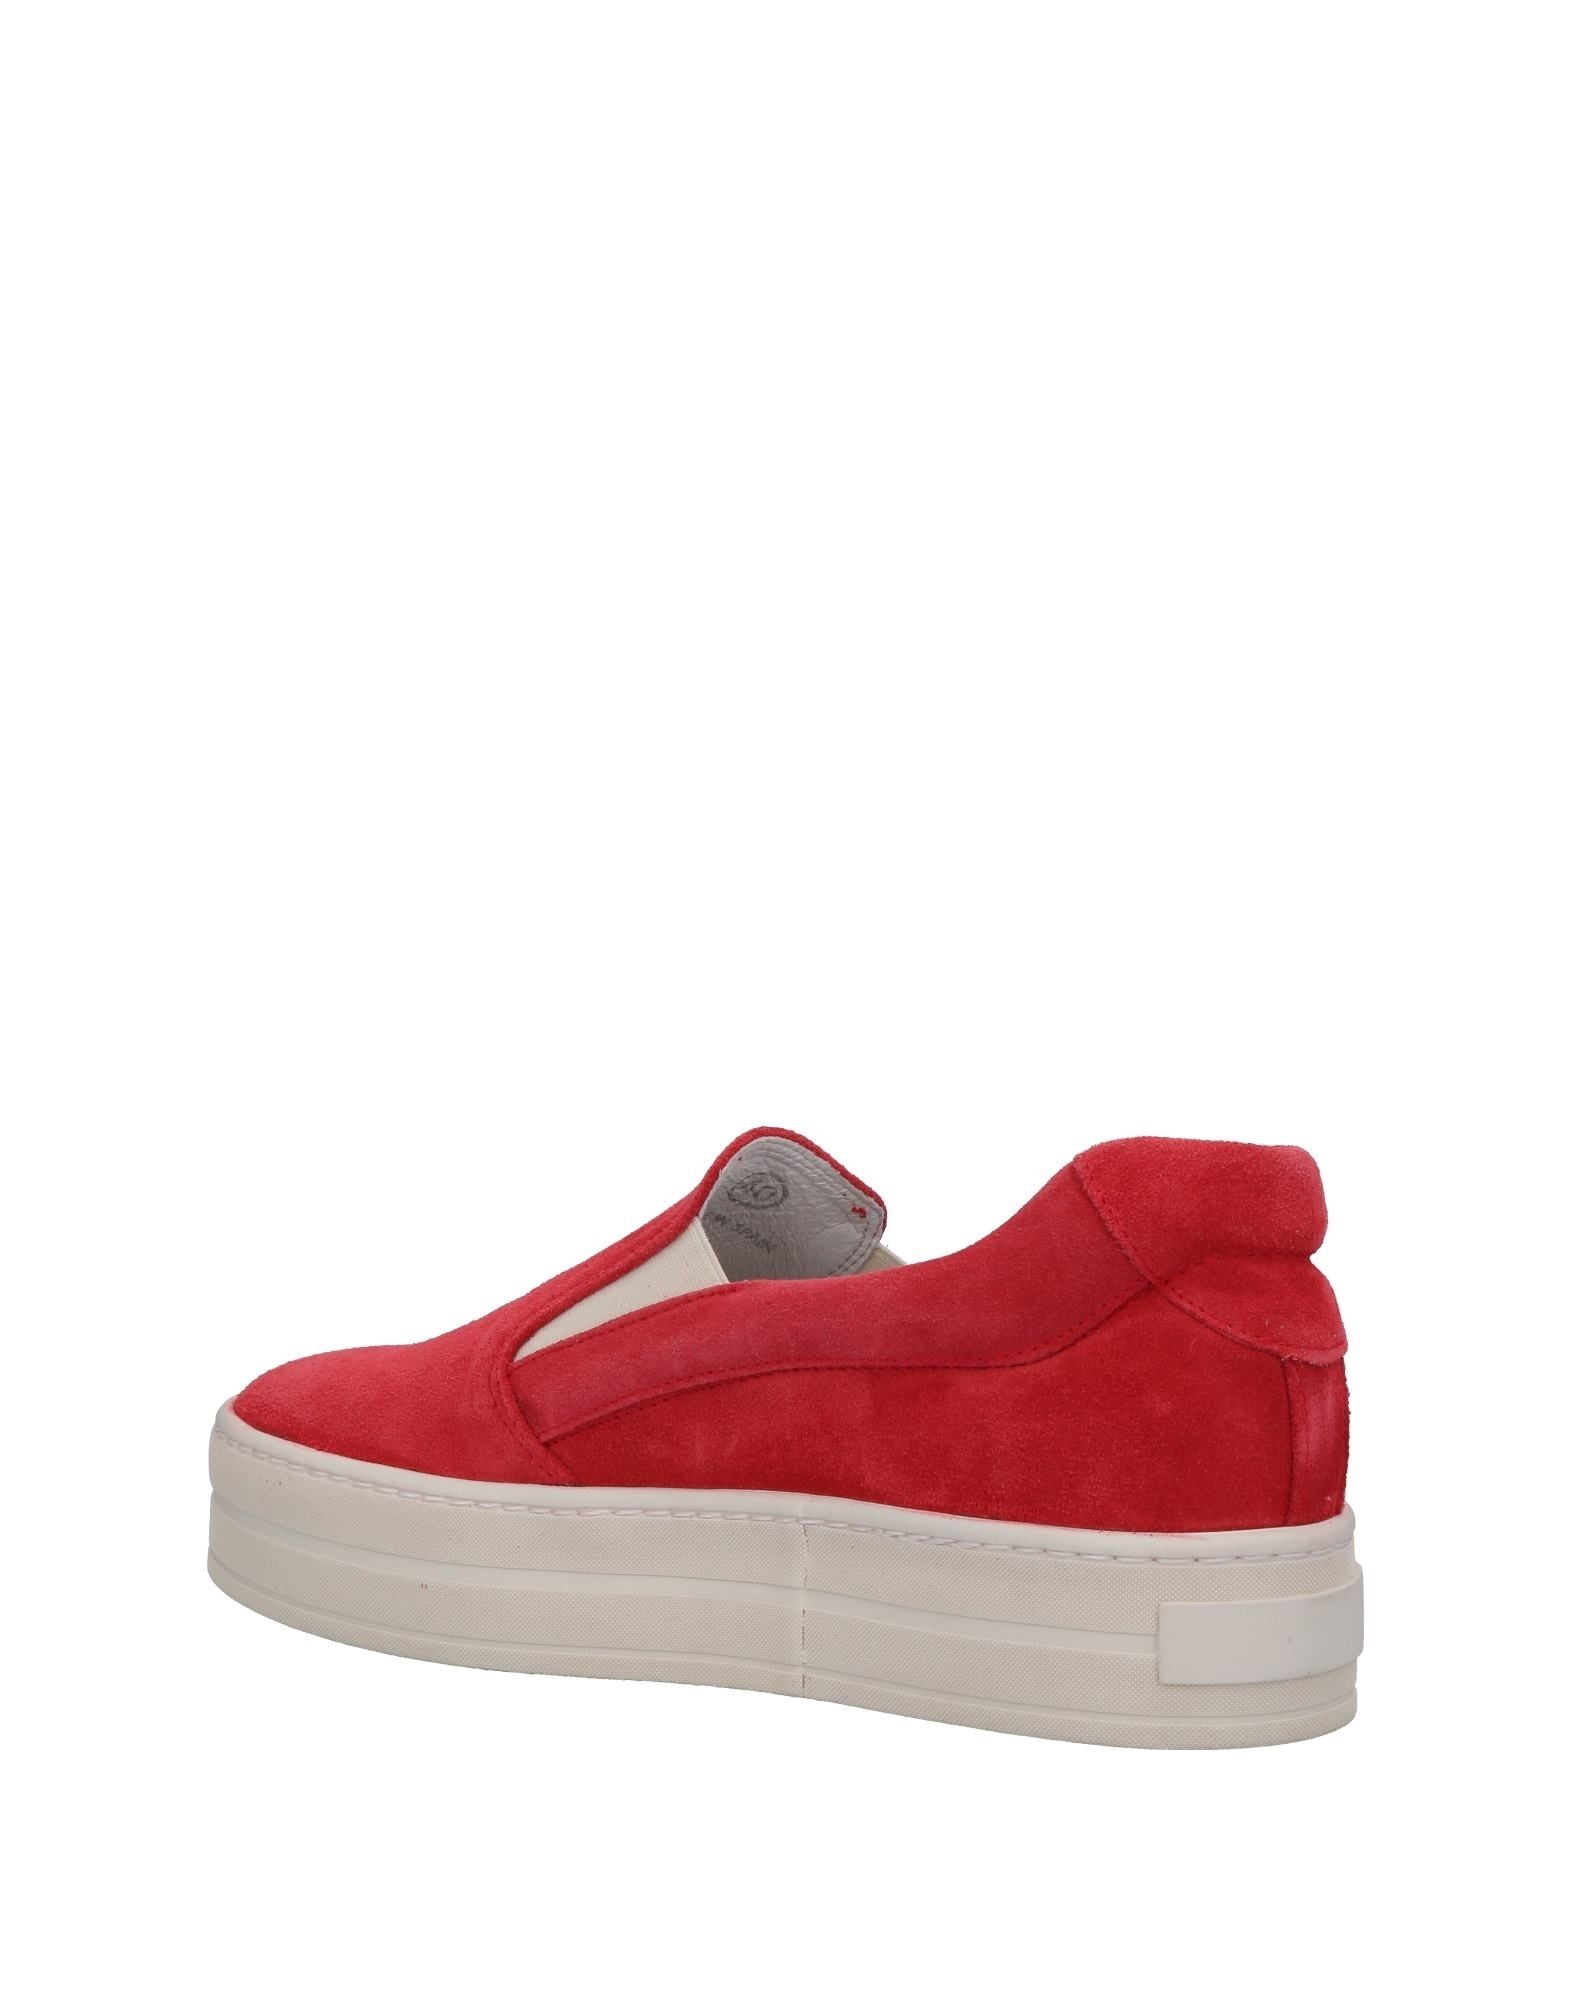 Sneakers Apair Femme - Sneakers Apair sur